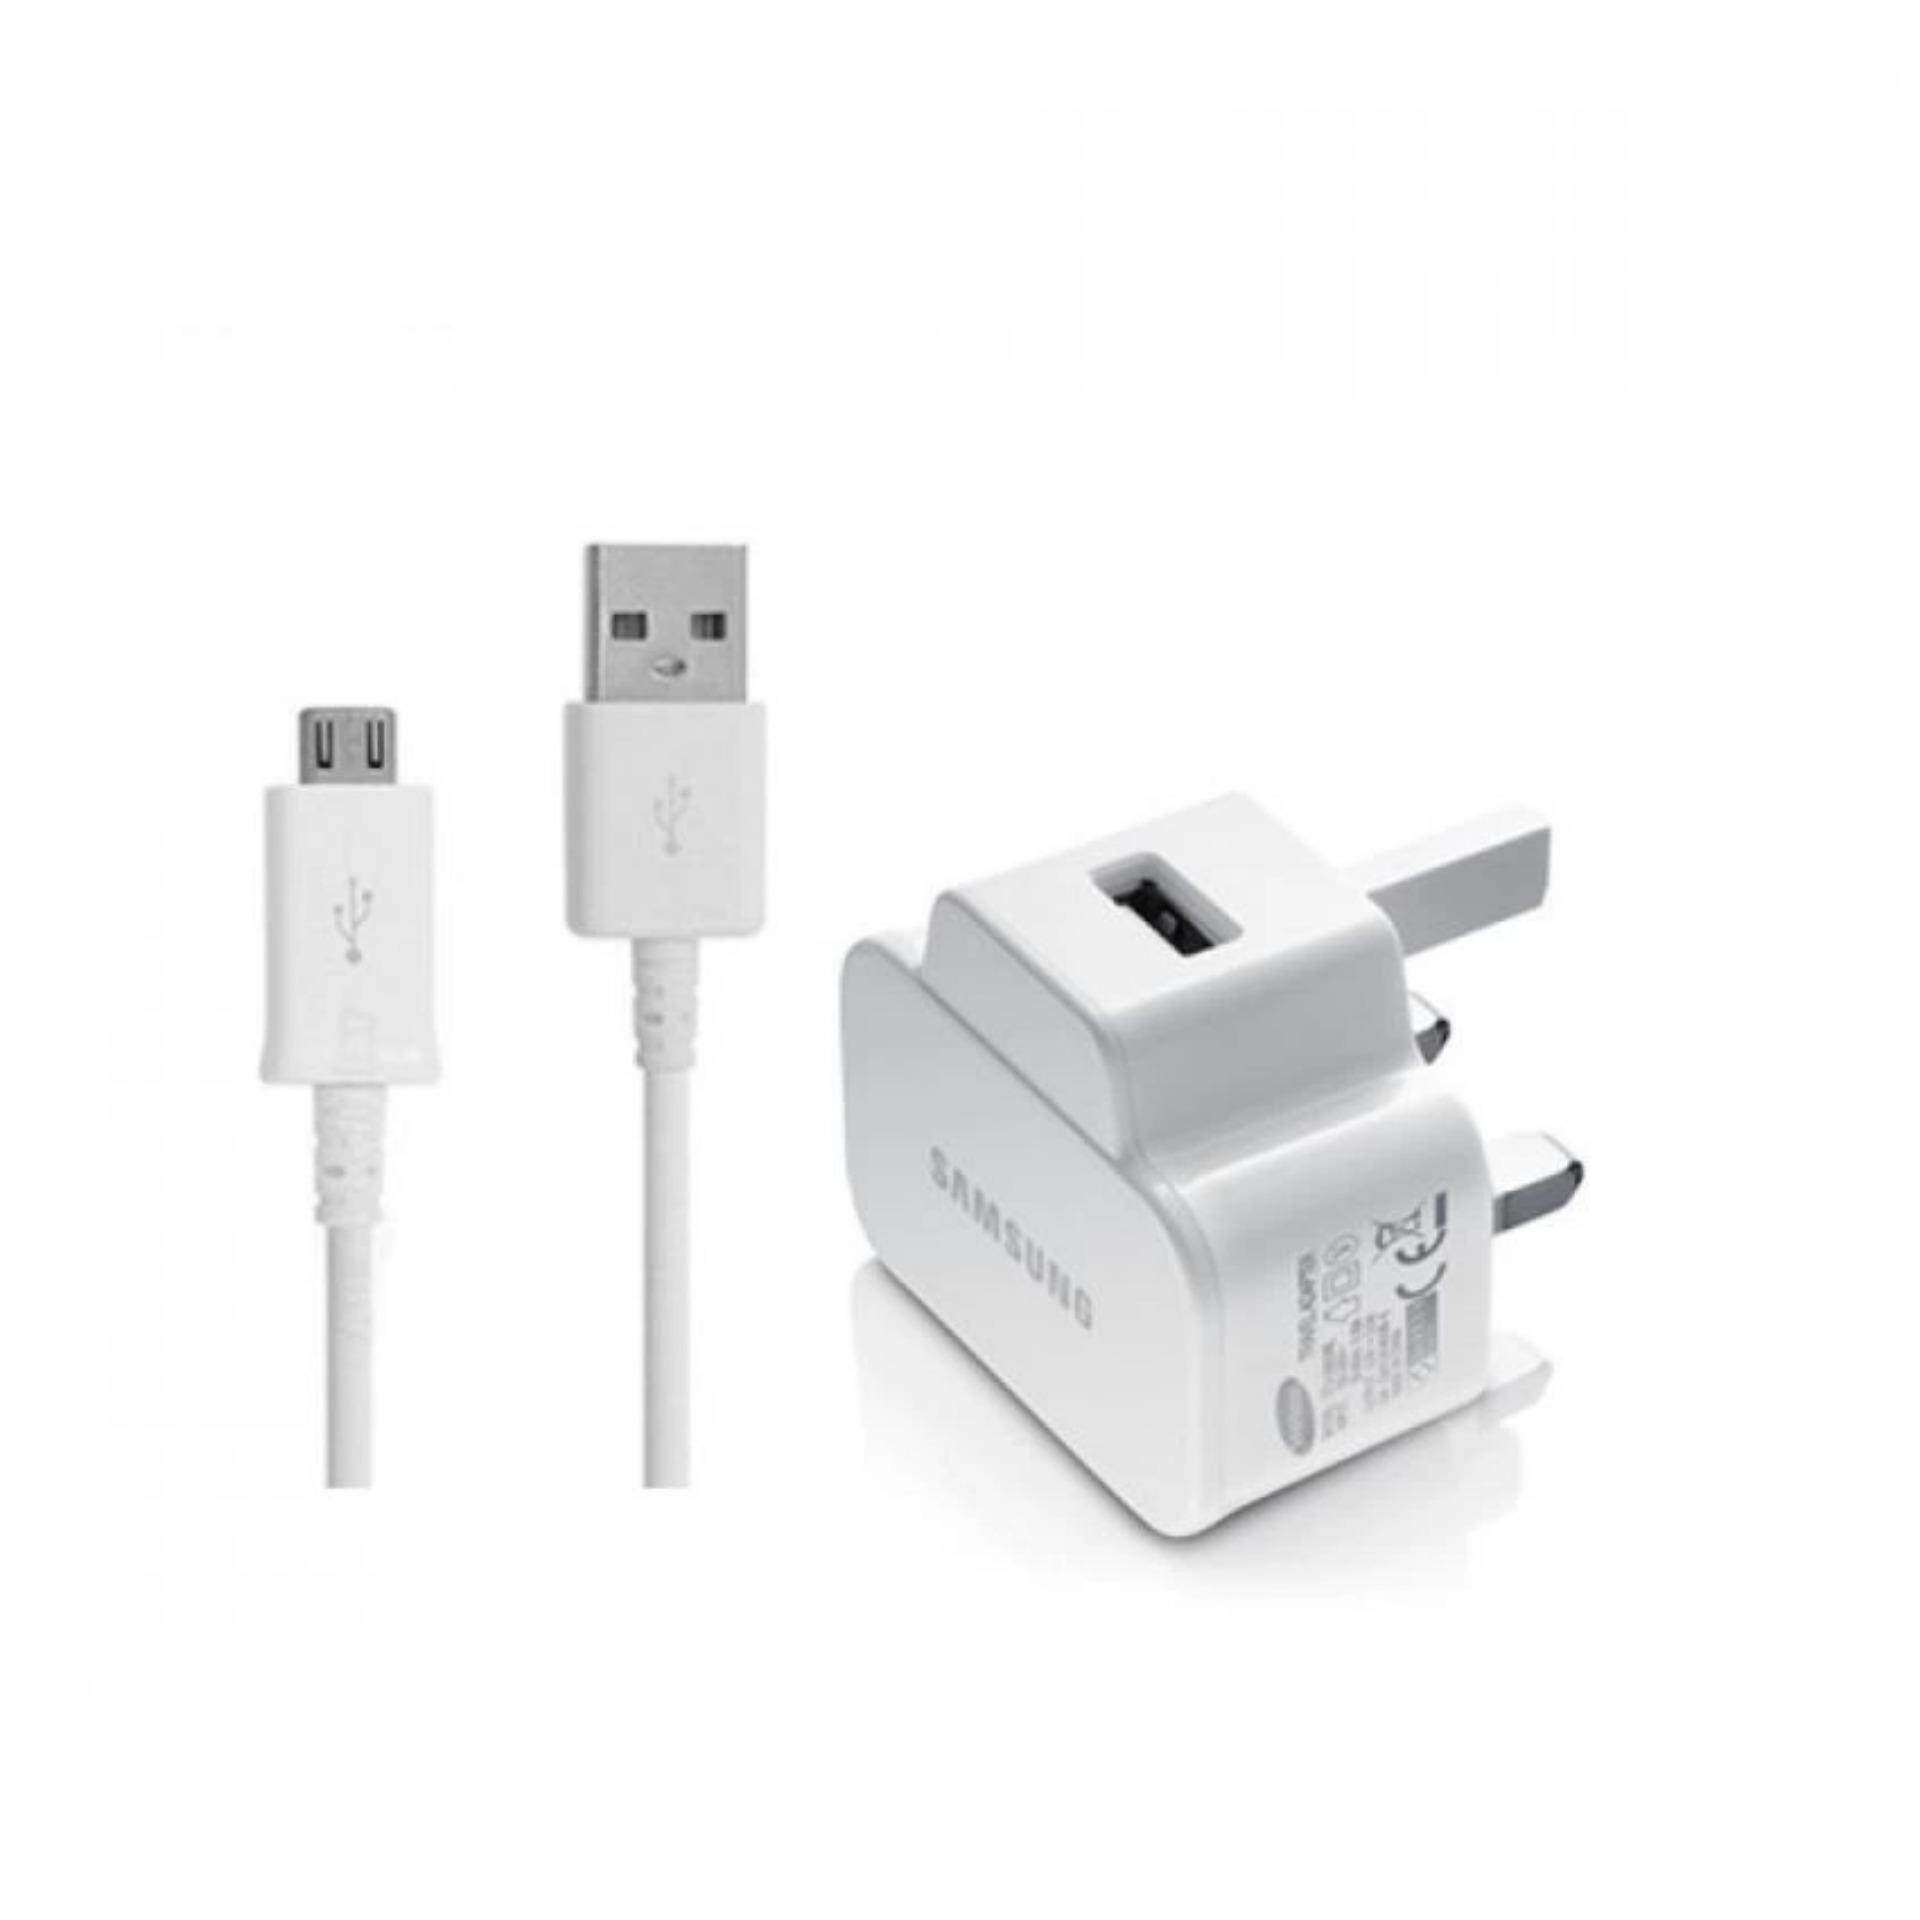 Samsung Wired Chargers For Phones Price In Malaysia Best Samsungampnbsp Galaxy Note 4 10w 21a High Speed Usb Travel Adapter With Mirco 30 Cable Compatible